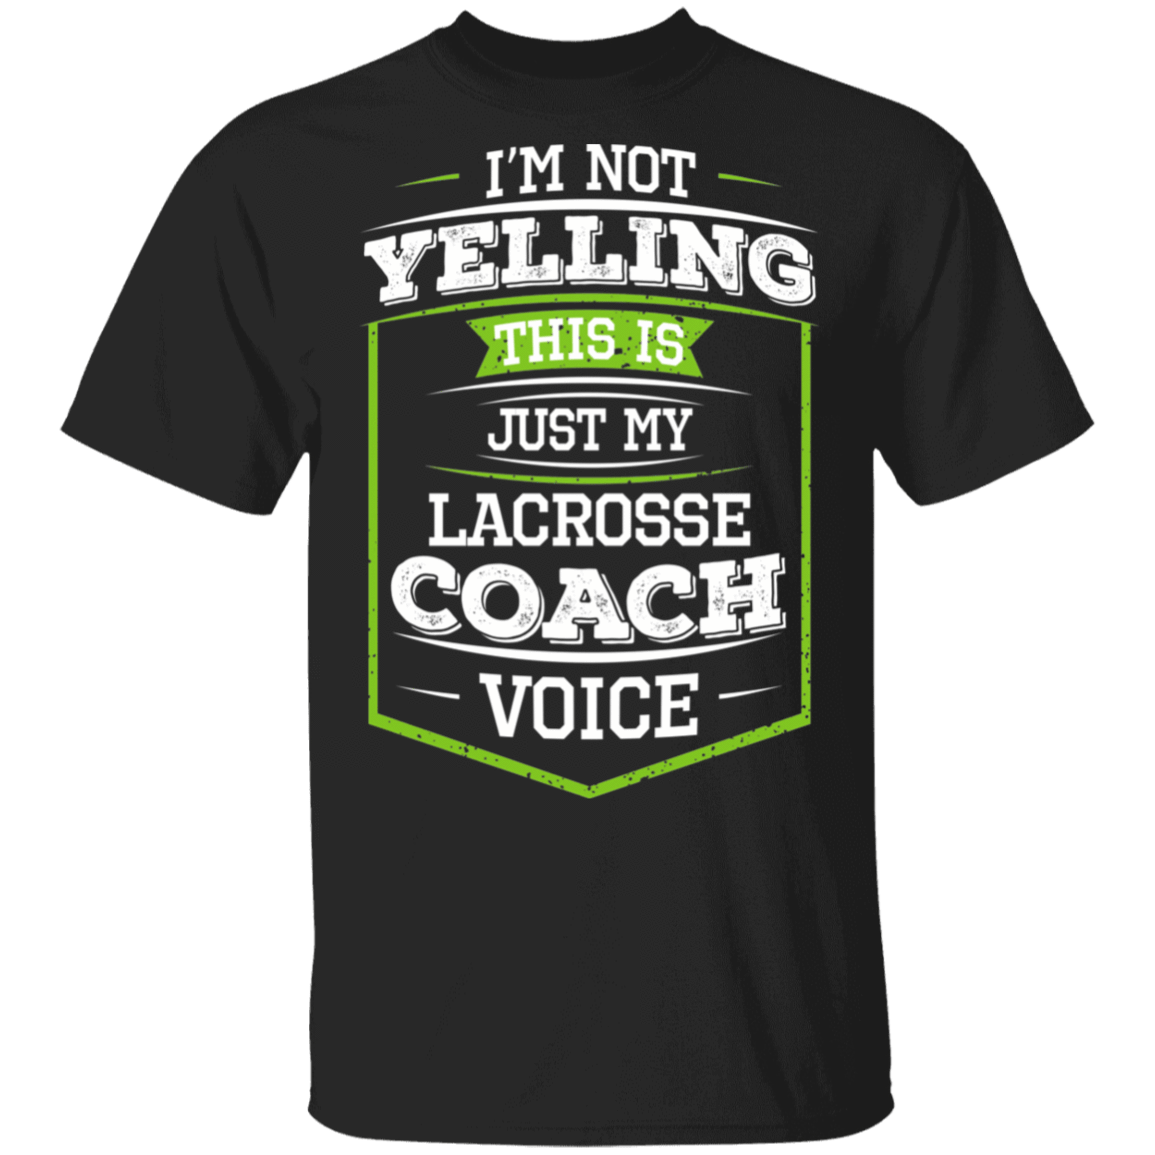 I'm Not Yelling This Is Just My Lacrosse Coach Voice T-Shirts, Hoodies 1049-9953-84918426-48144 - Tee Ript